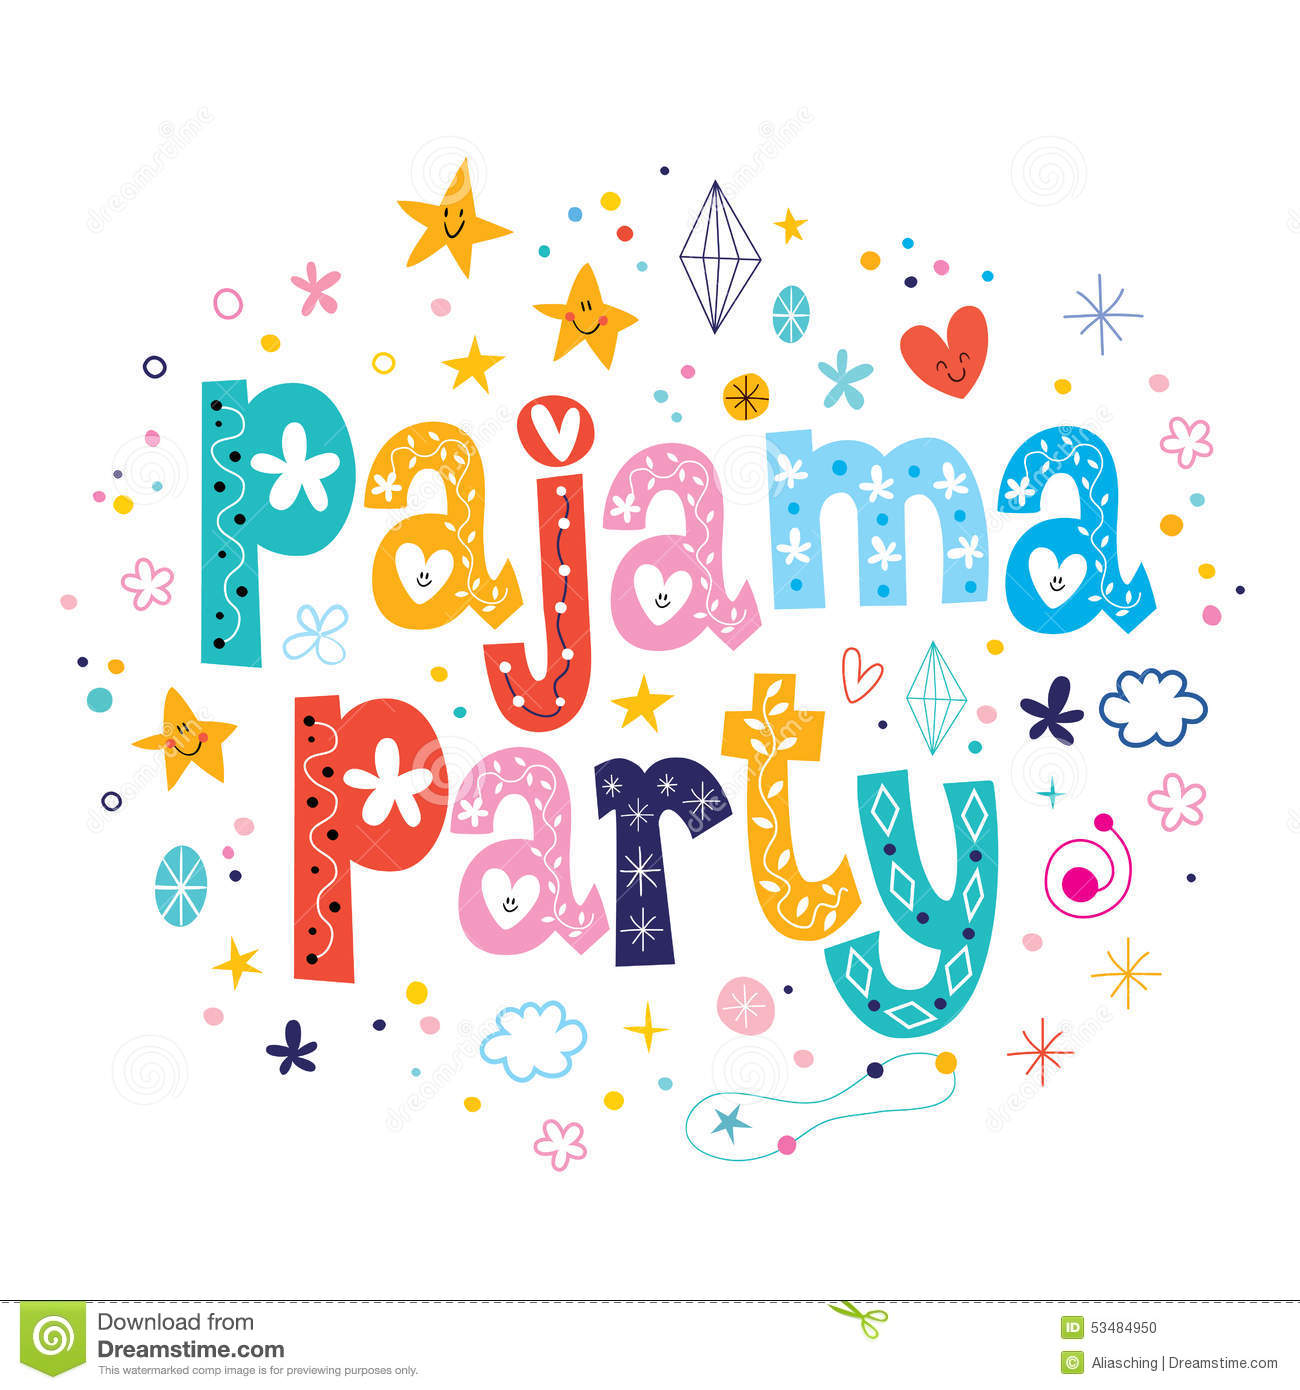 Pajama Party Clipart & Pajama Party Clip Art Images.